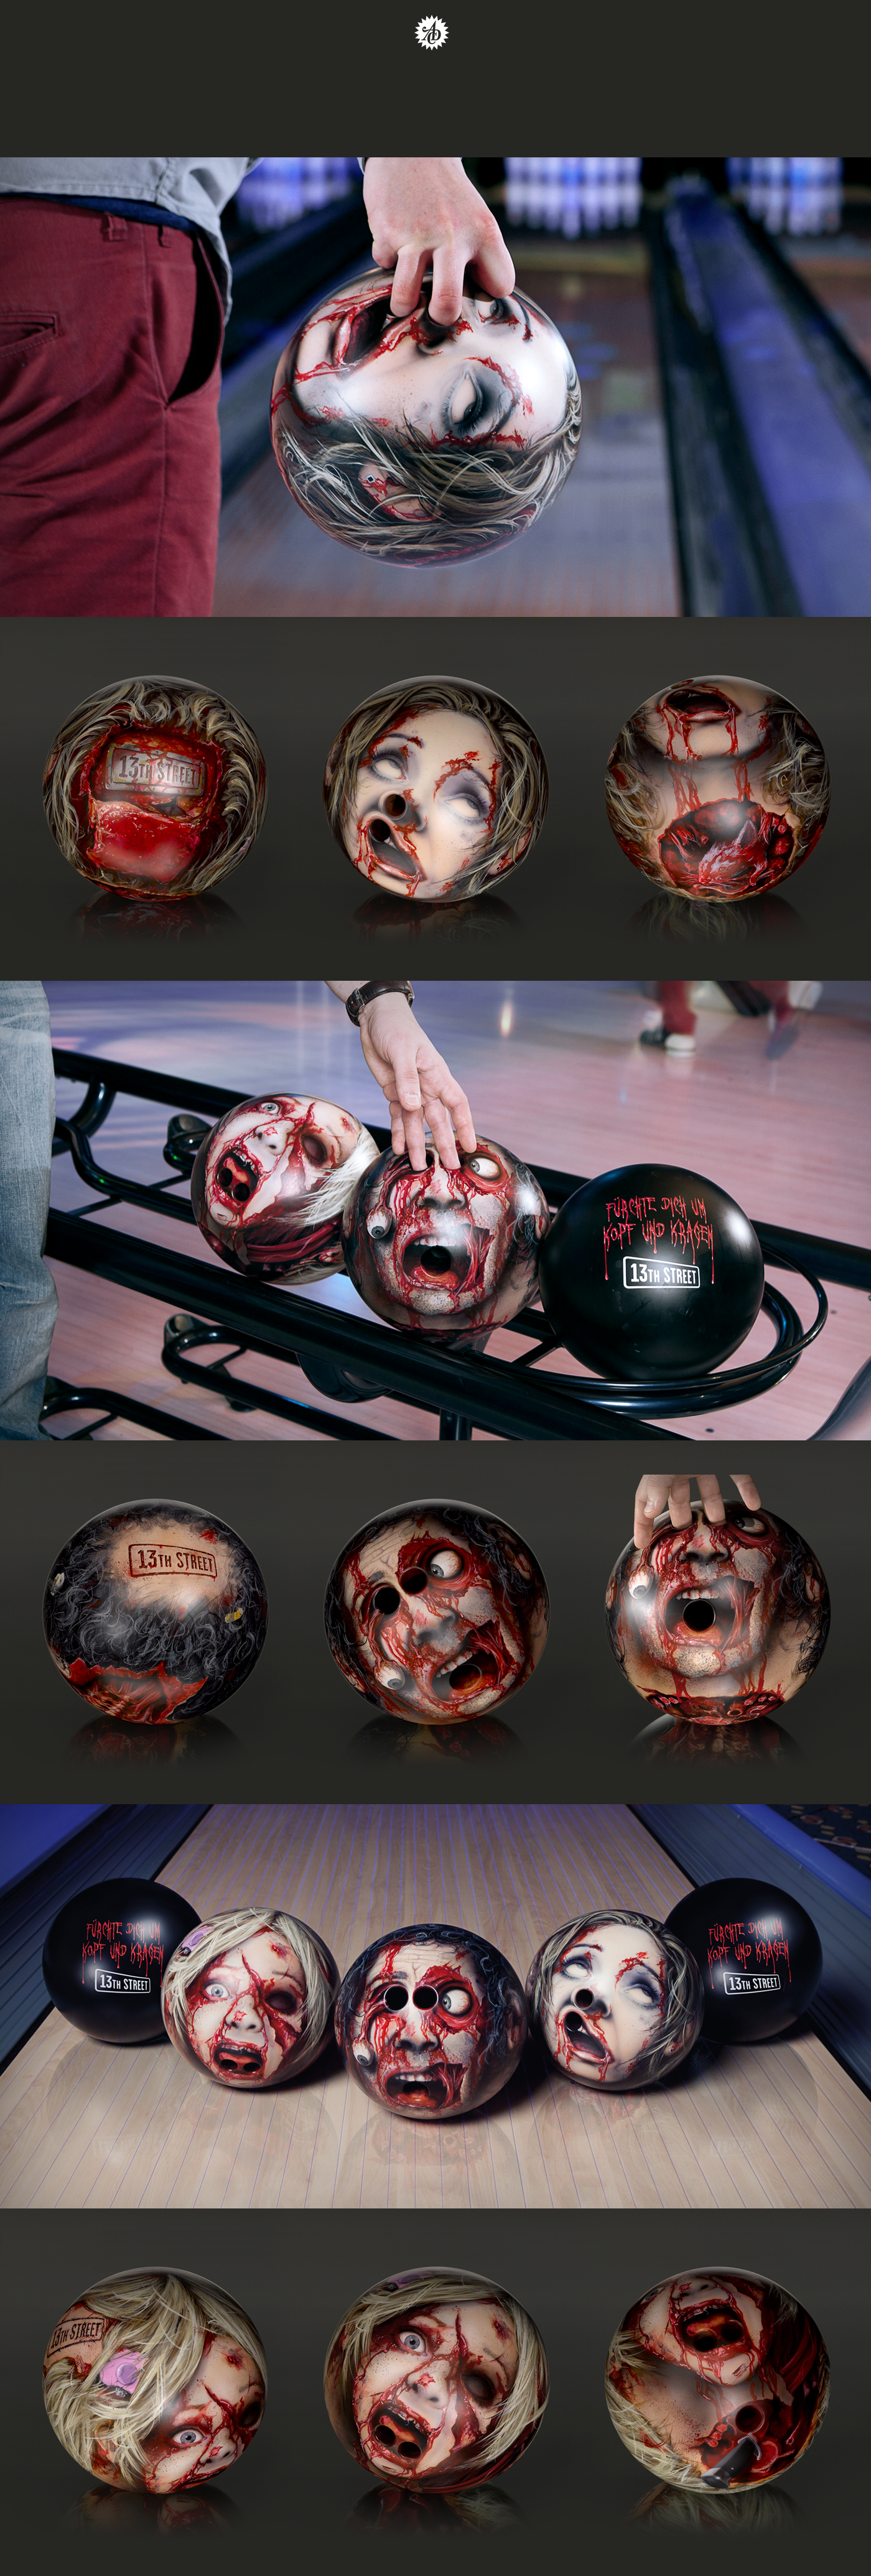 13th Street bowling heads bowlingheads JvM RUOK Schmidt-Fitzner Scholz Cannes Cannes lions